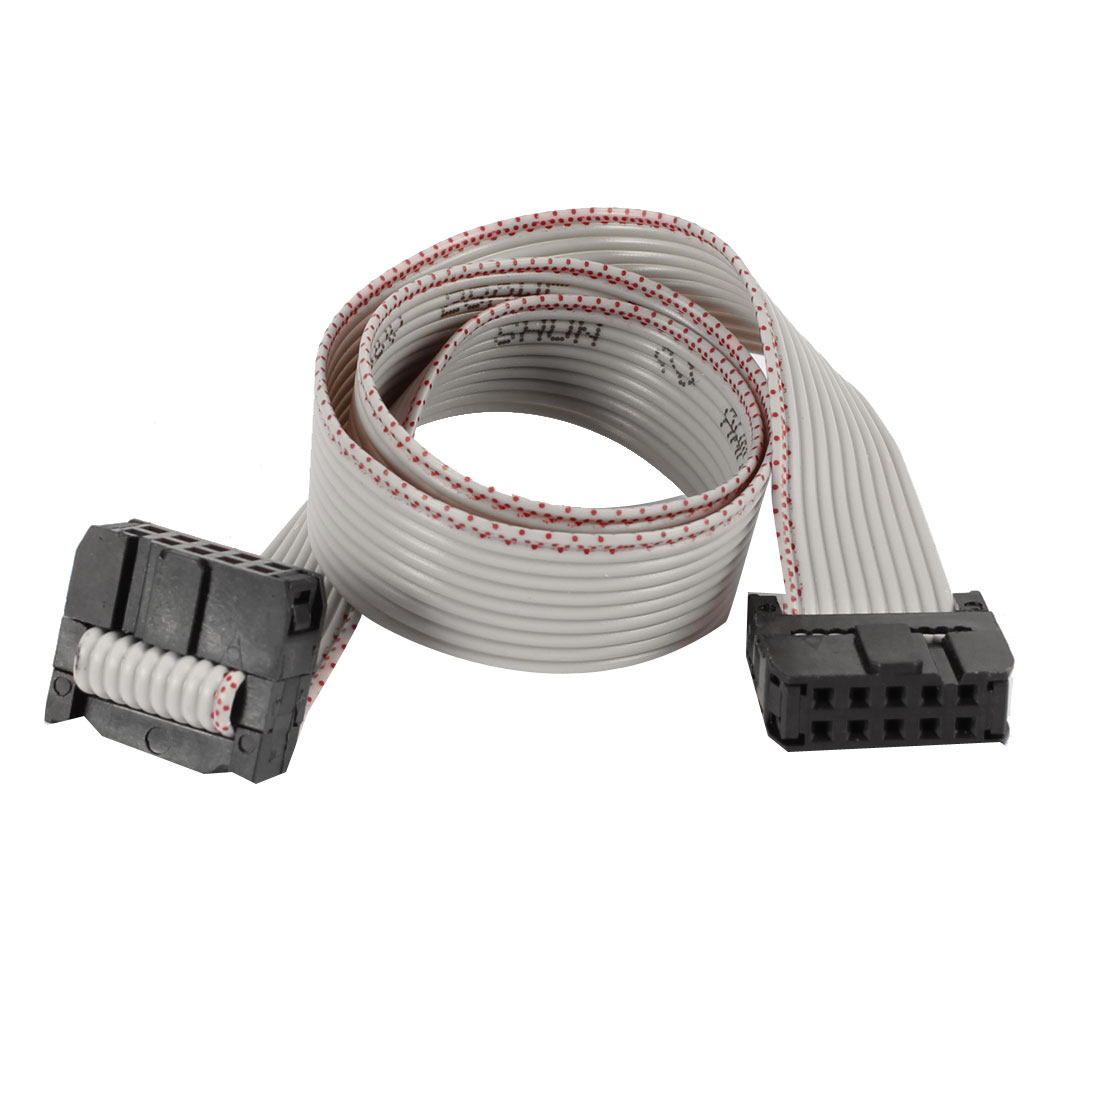 30cm Long Dual IDC FC-10P Connector JTAG Download FFC Cable Wire